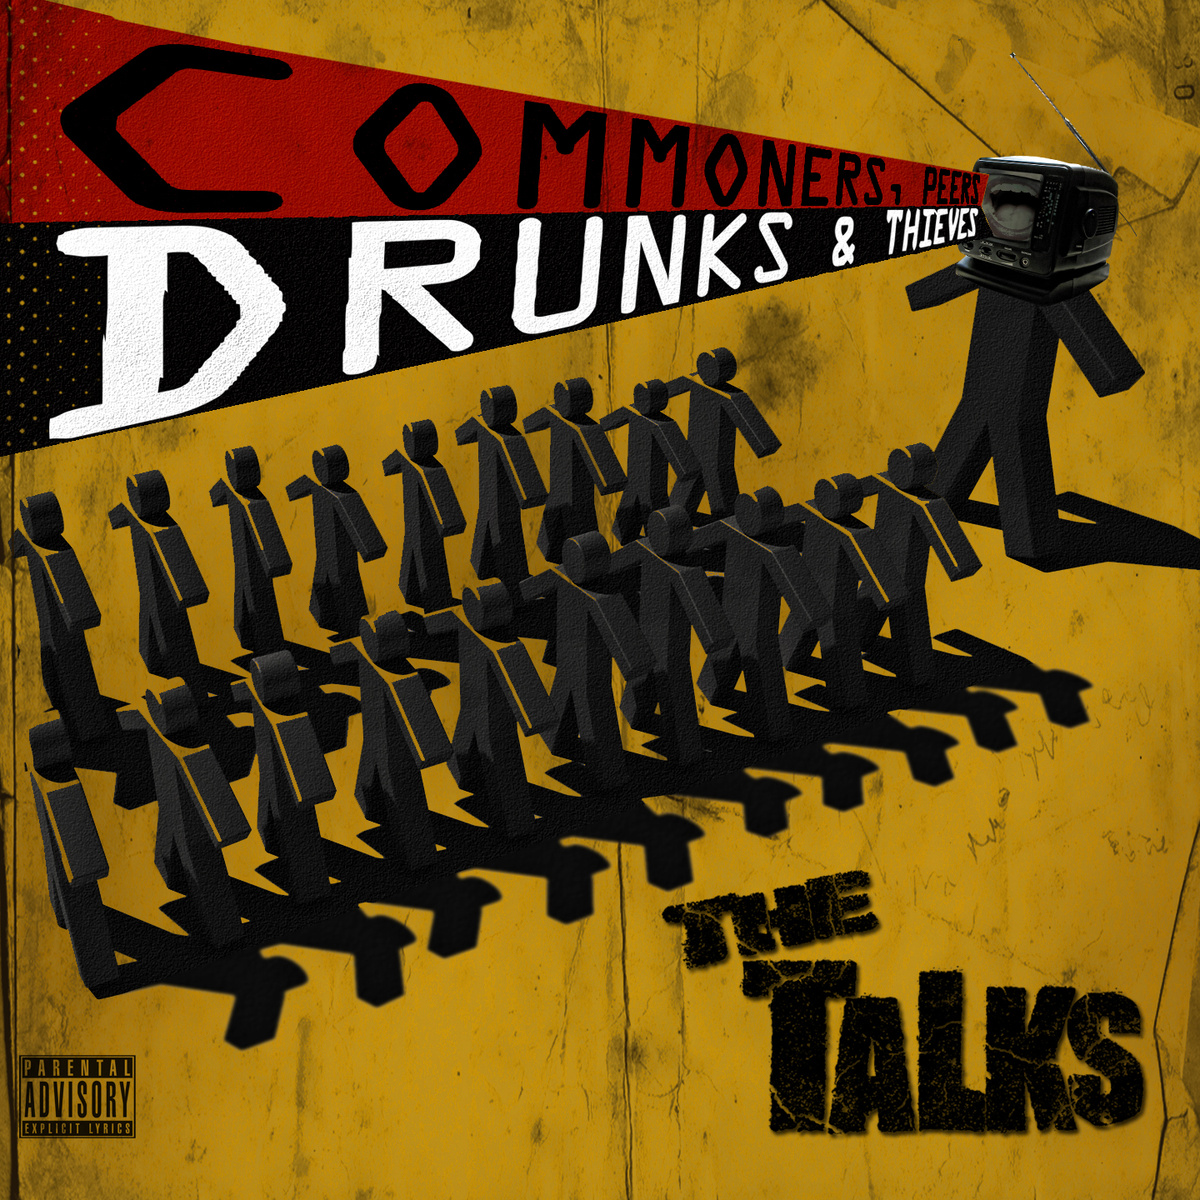 Talks, The/COMMONERS, PEERS, DRUNKS LP